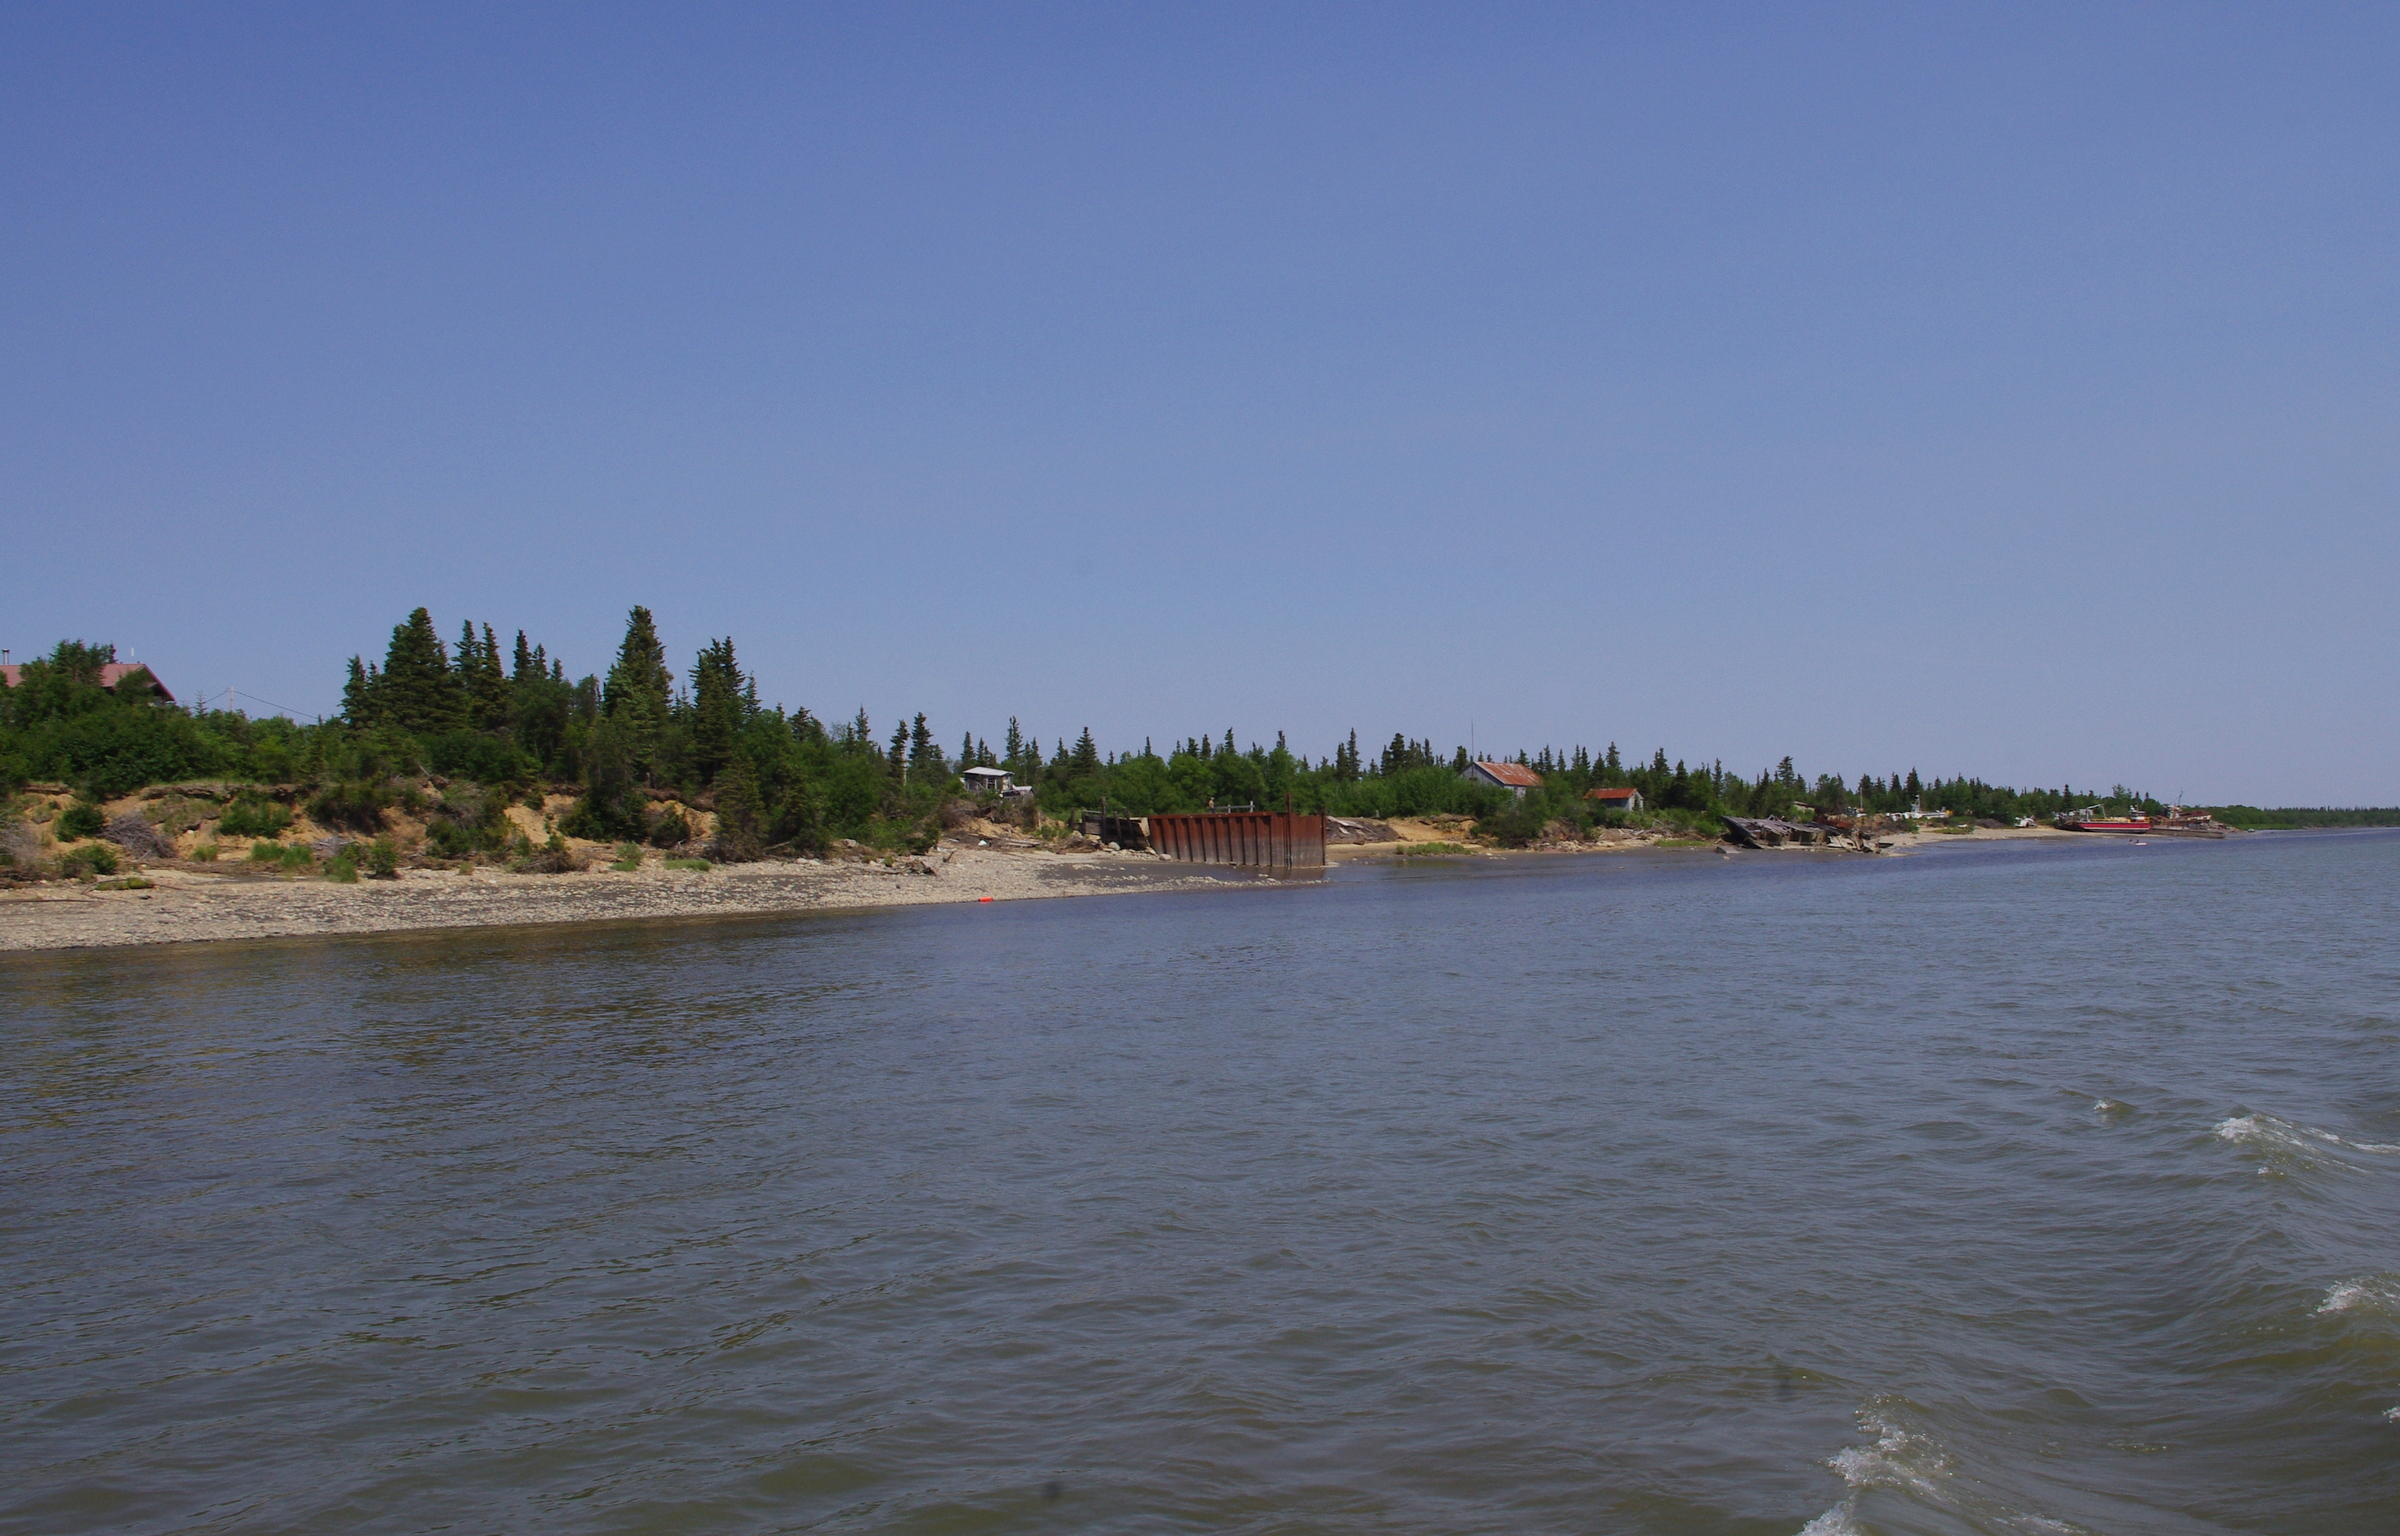 Levelock is shown in this June 2015 photo. The community on the Kvichak River is working to build a fish processing plant, which it hopes will open next year. (Photo by Molly Dischner/KDLG)